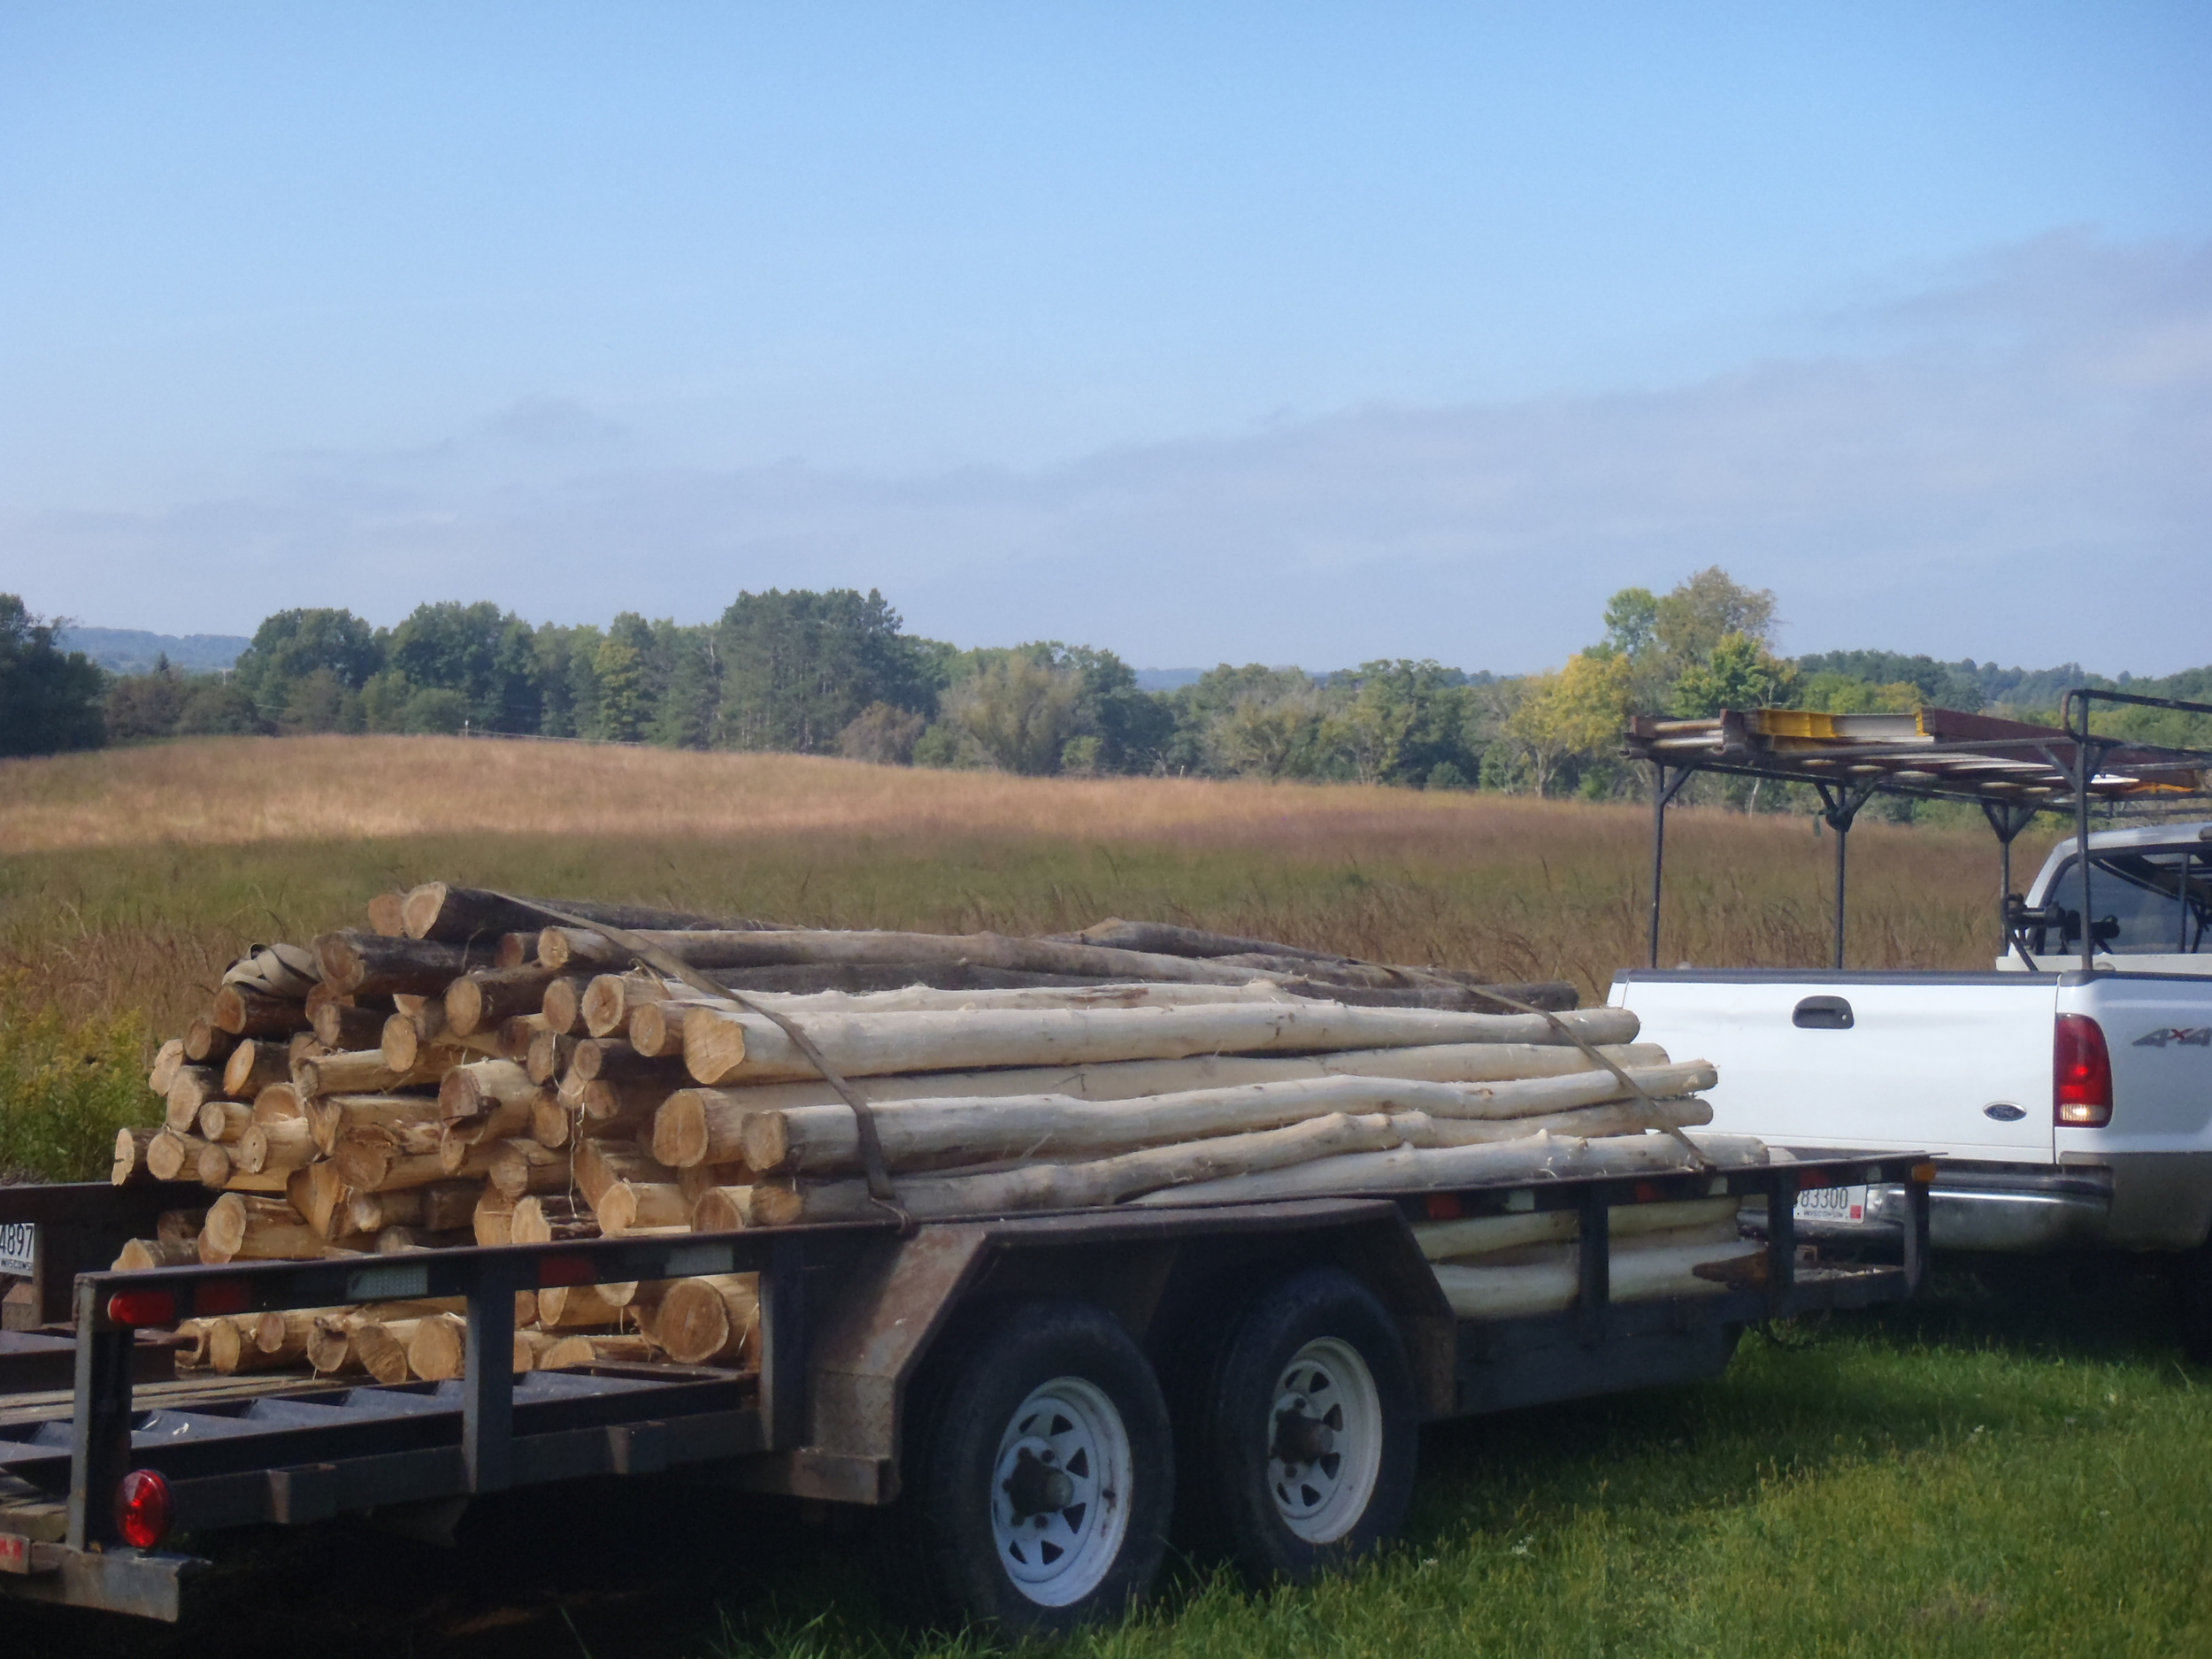 93 of our 12' Black locust fenceposts have arrived. Woven wire is set to arrive later this week, now we just need funds for supplies to weave it all together and install! Photo by Erin Schneider